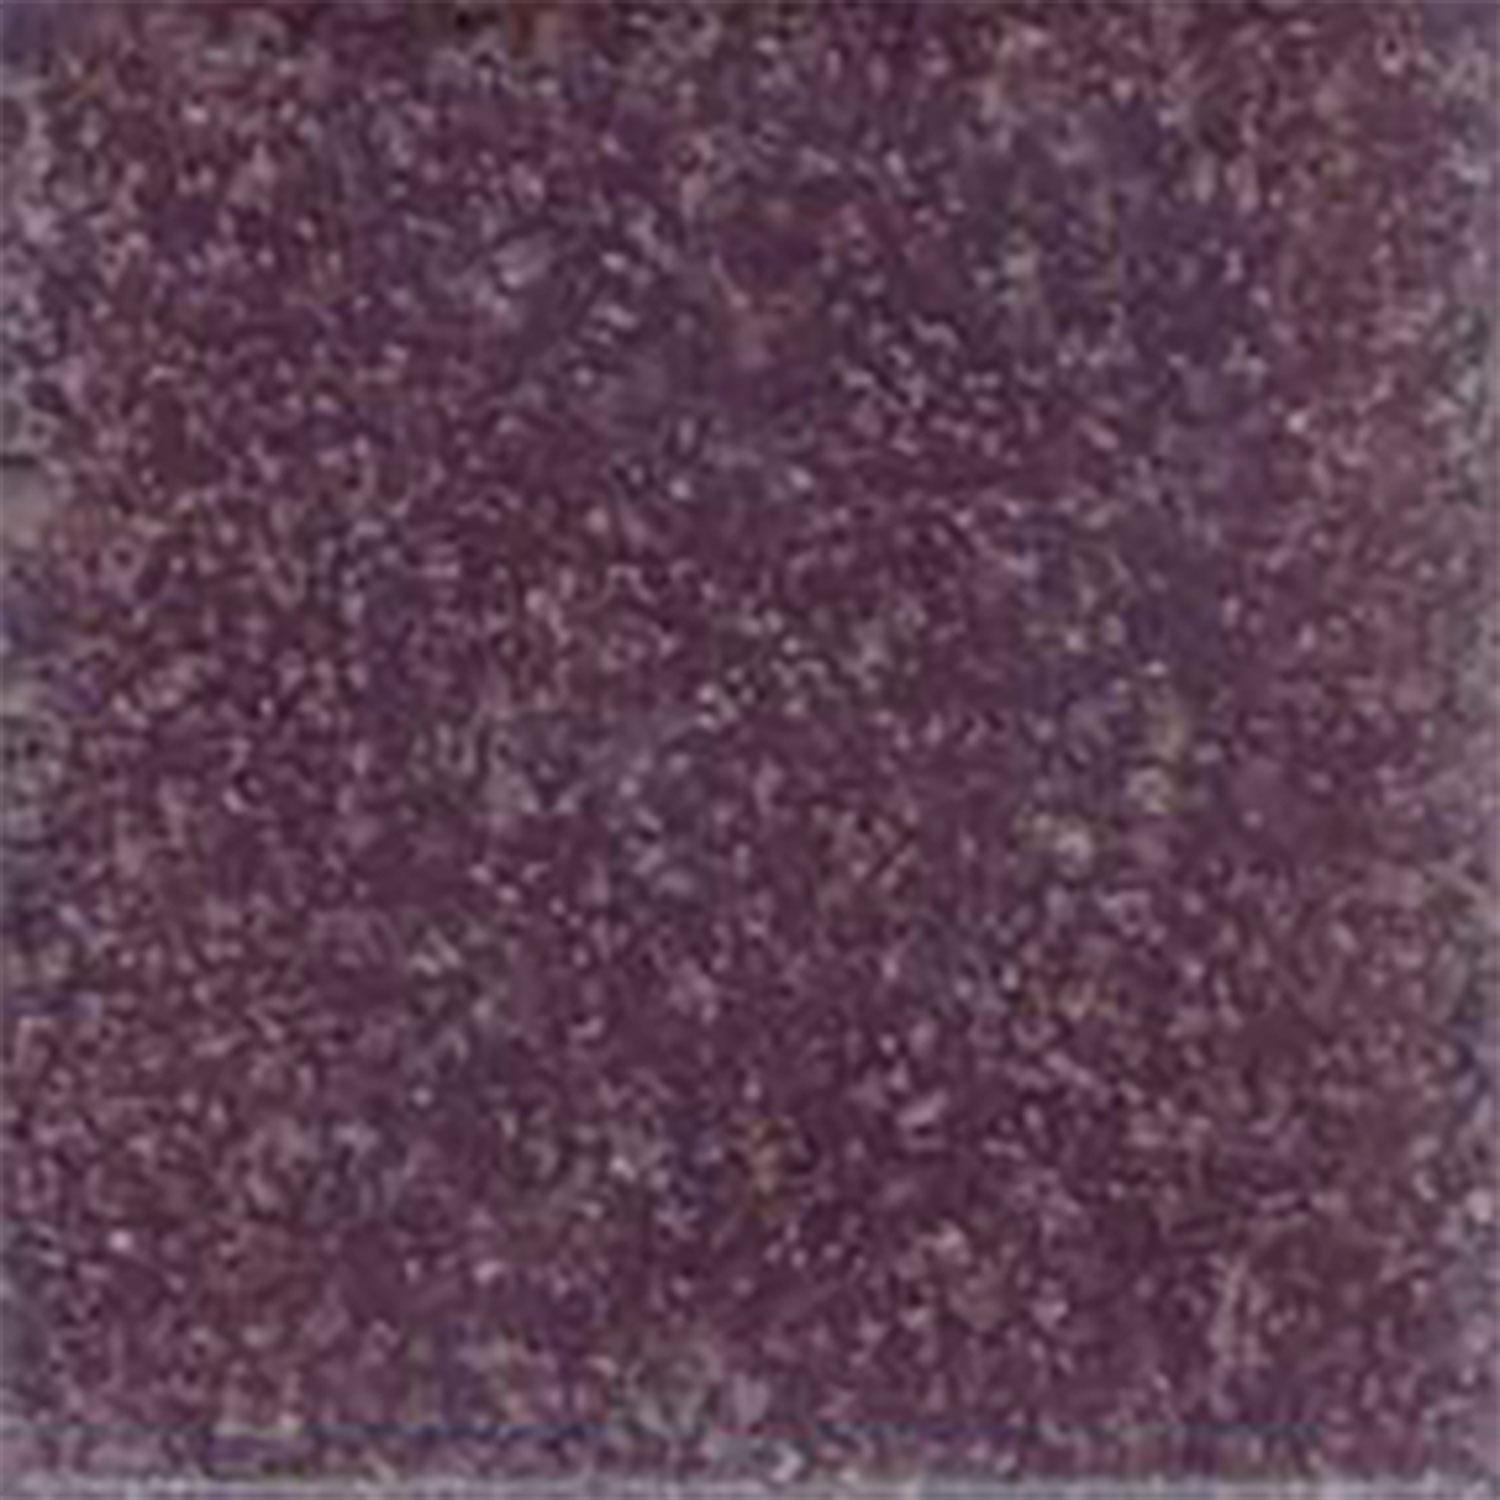 3/8 Pansy Venetian Glass Tile - 2.2 Lb